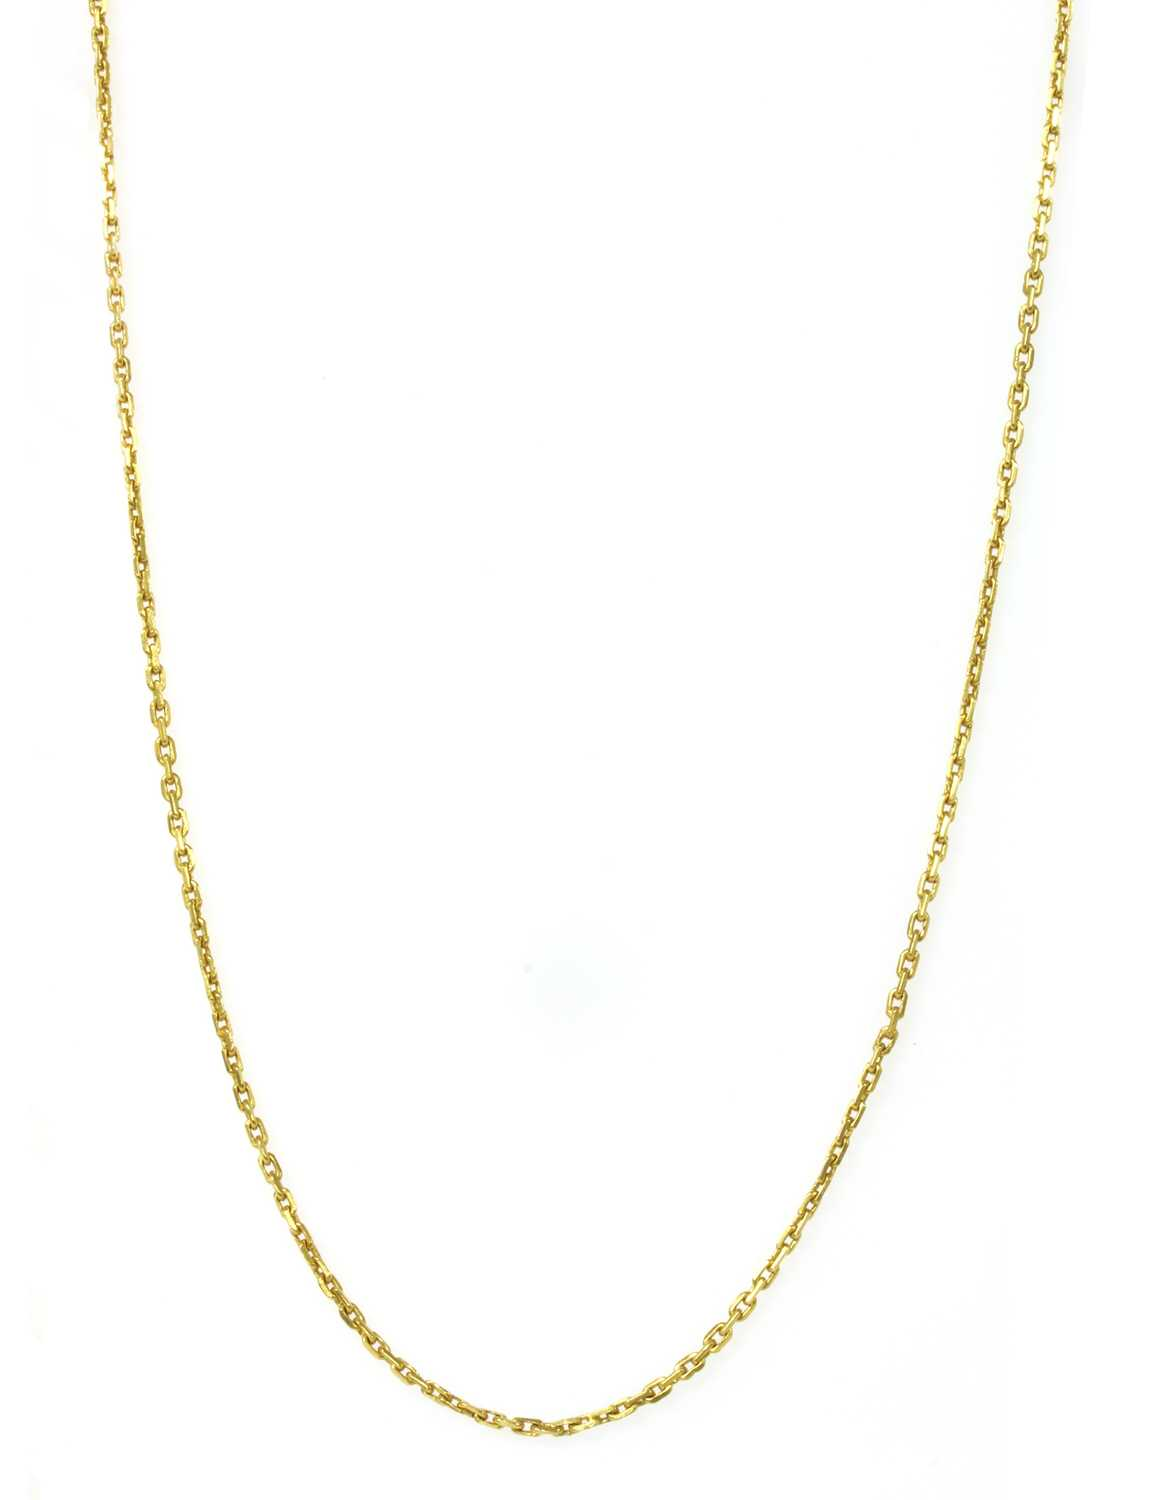 A 22ct gold filed trace link chain,